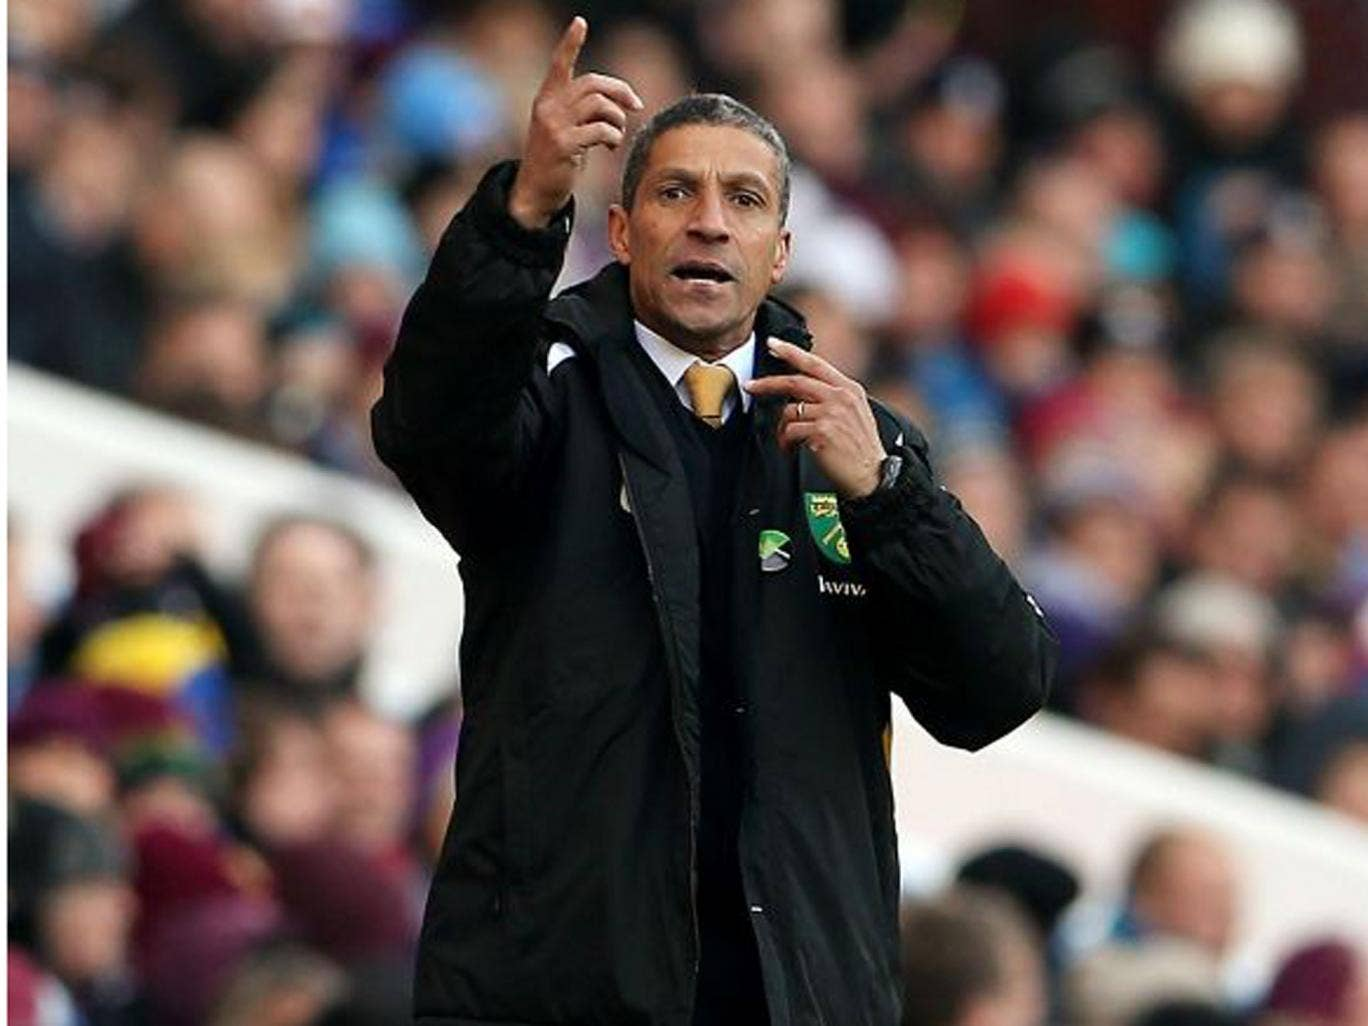 Chris Hughton wants a reaction from his players after the 5-0 loss to Liverpool